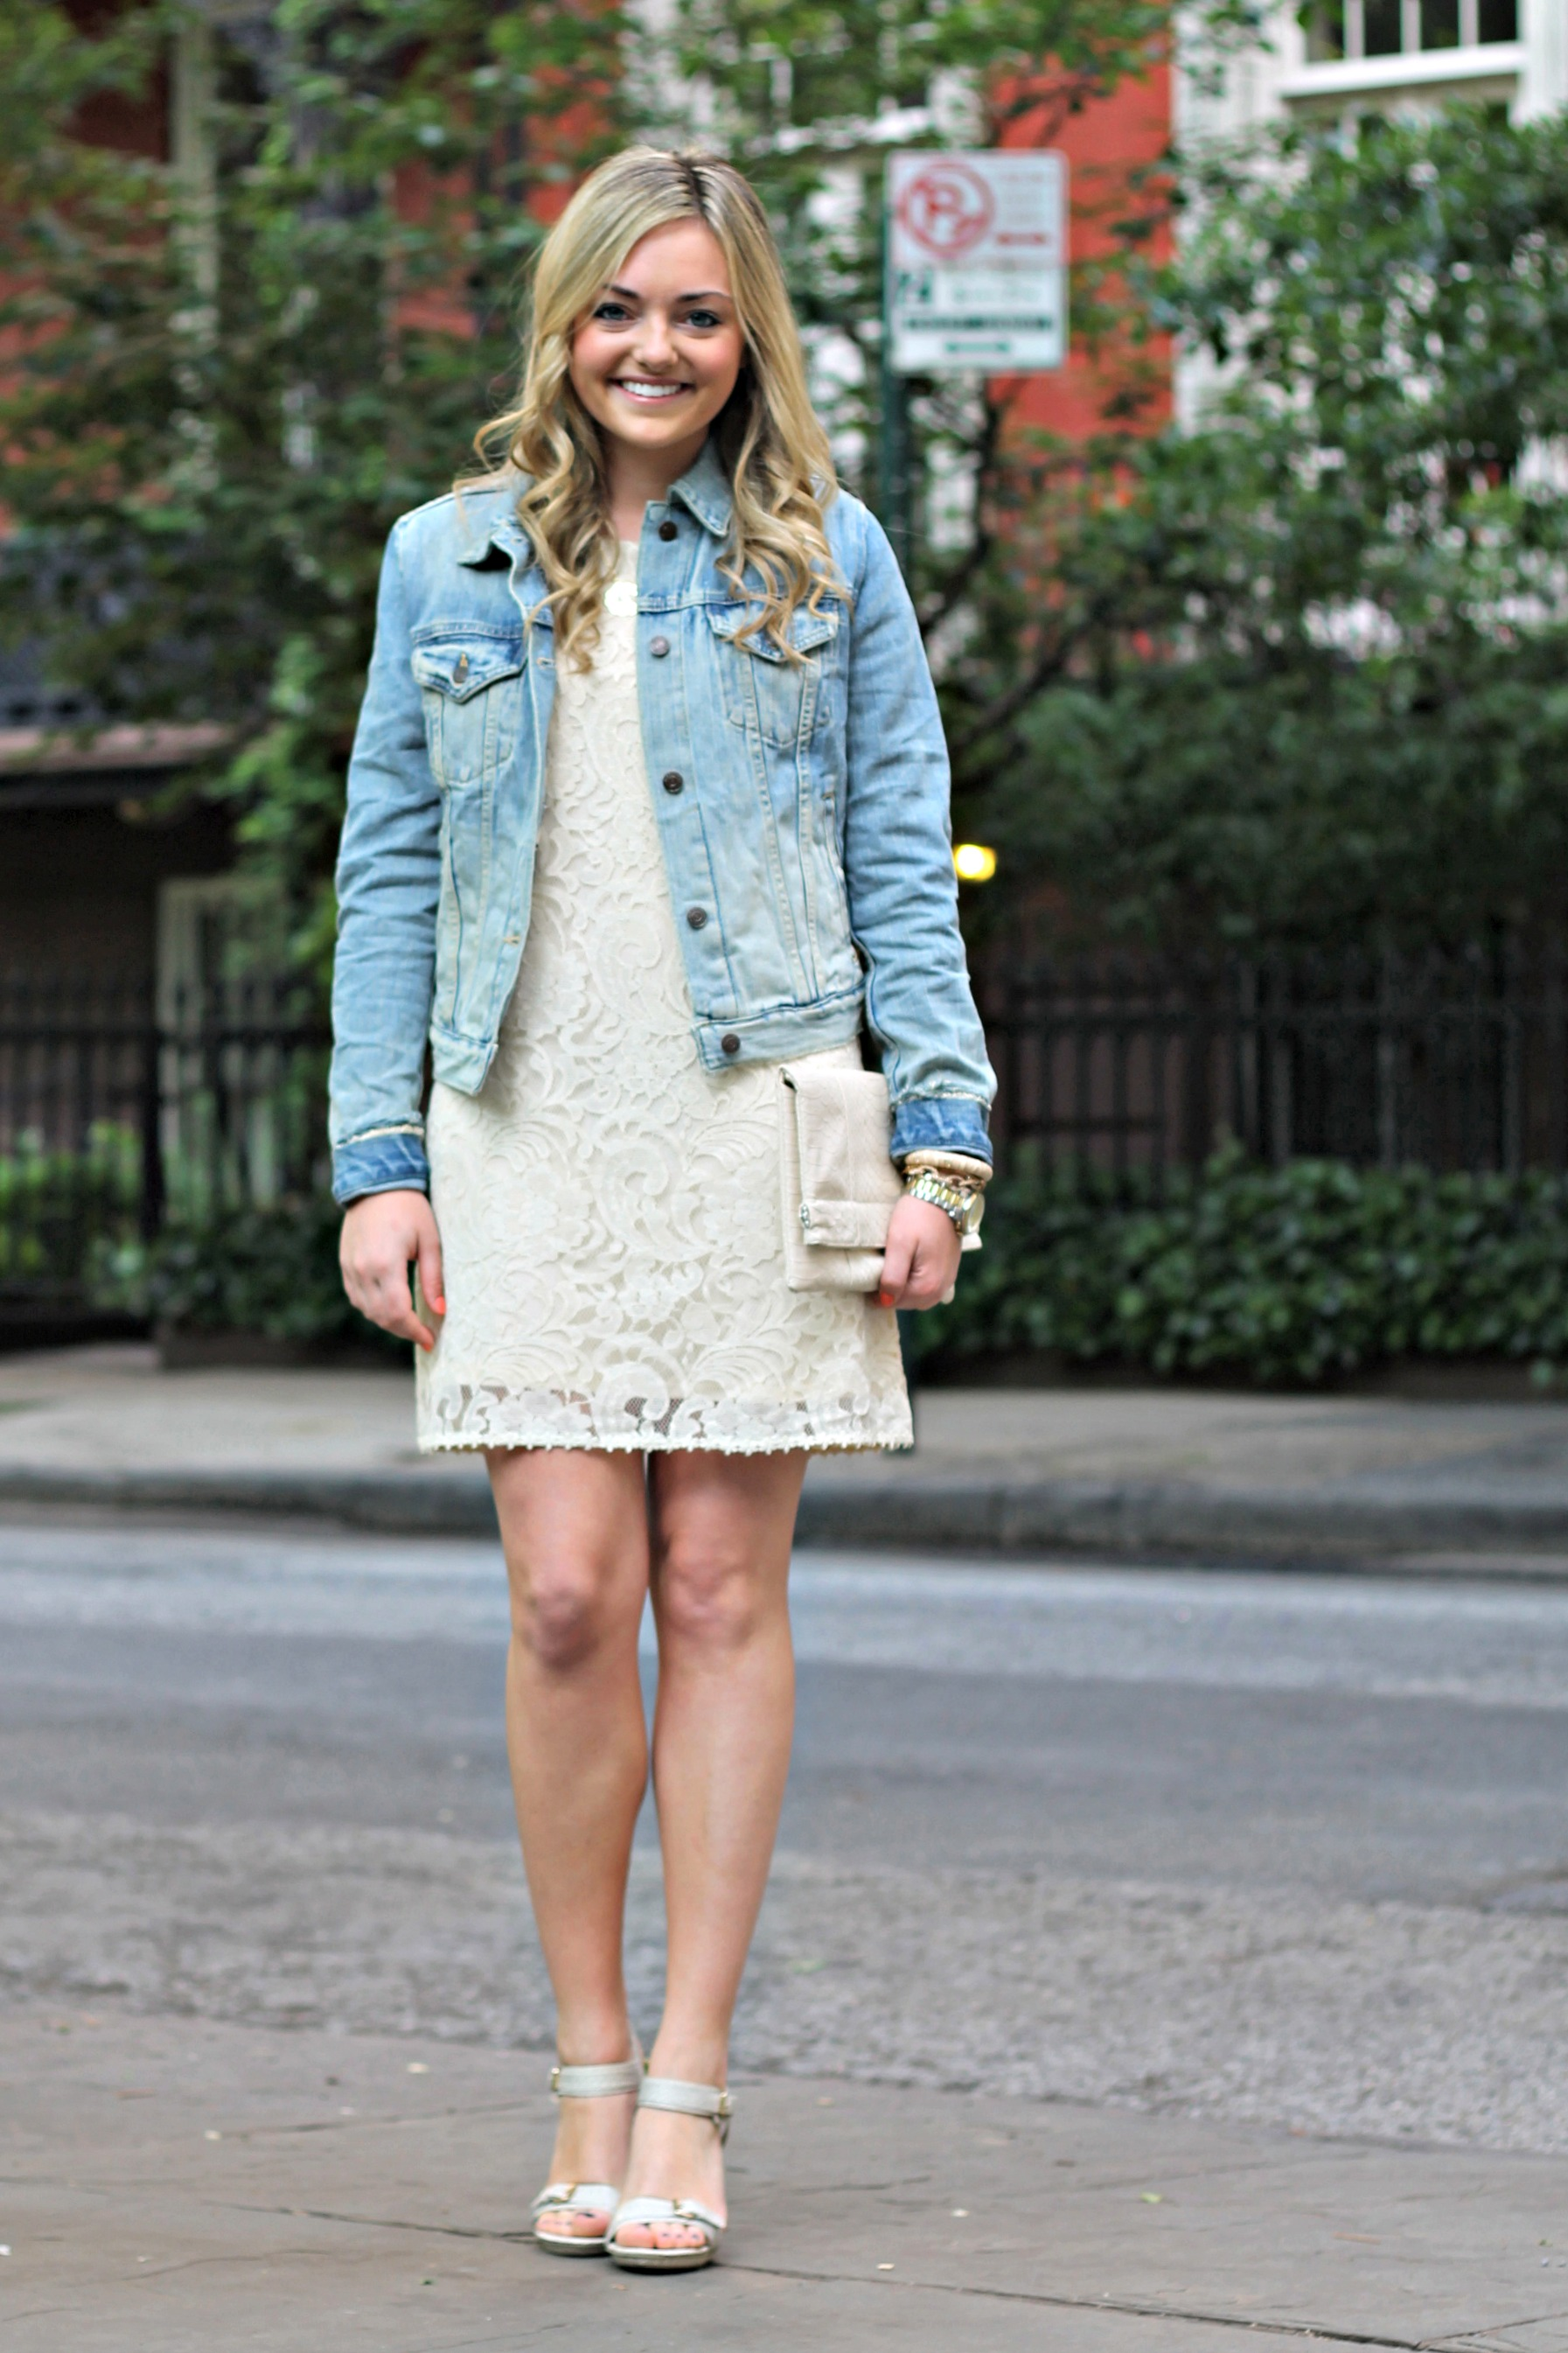 Denim Jacket With Dress - My Jacket